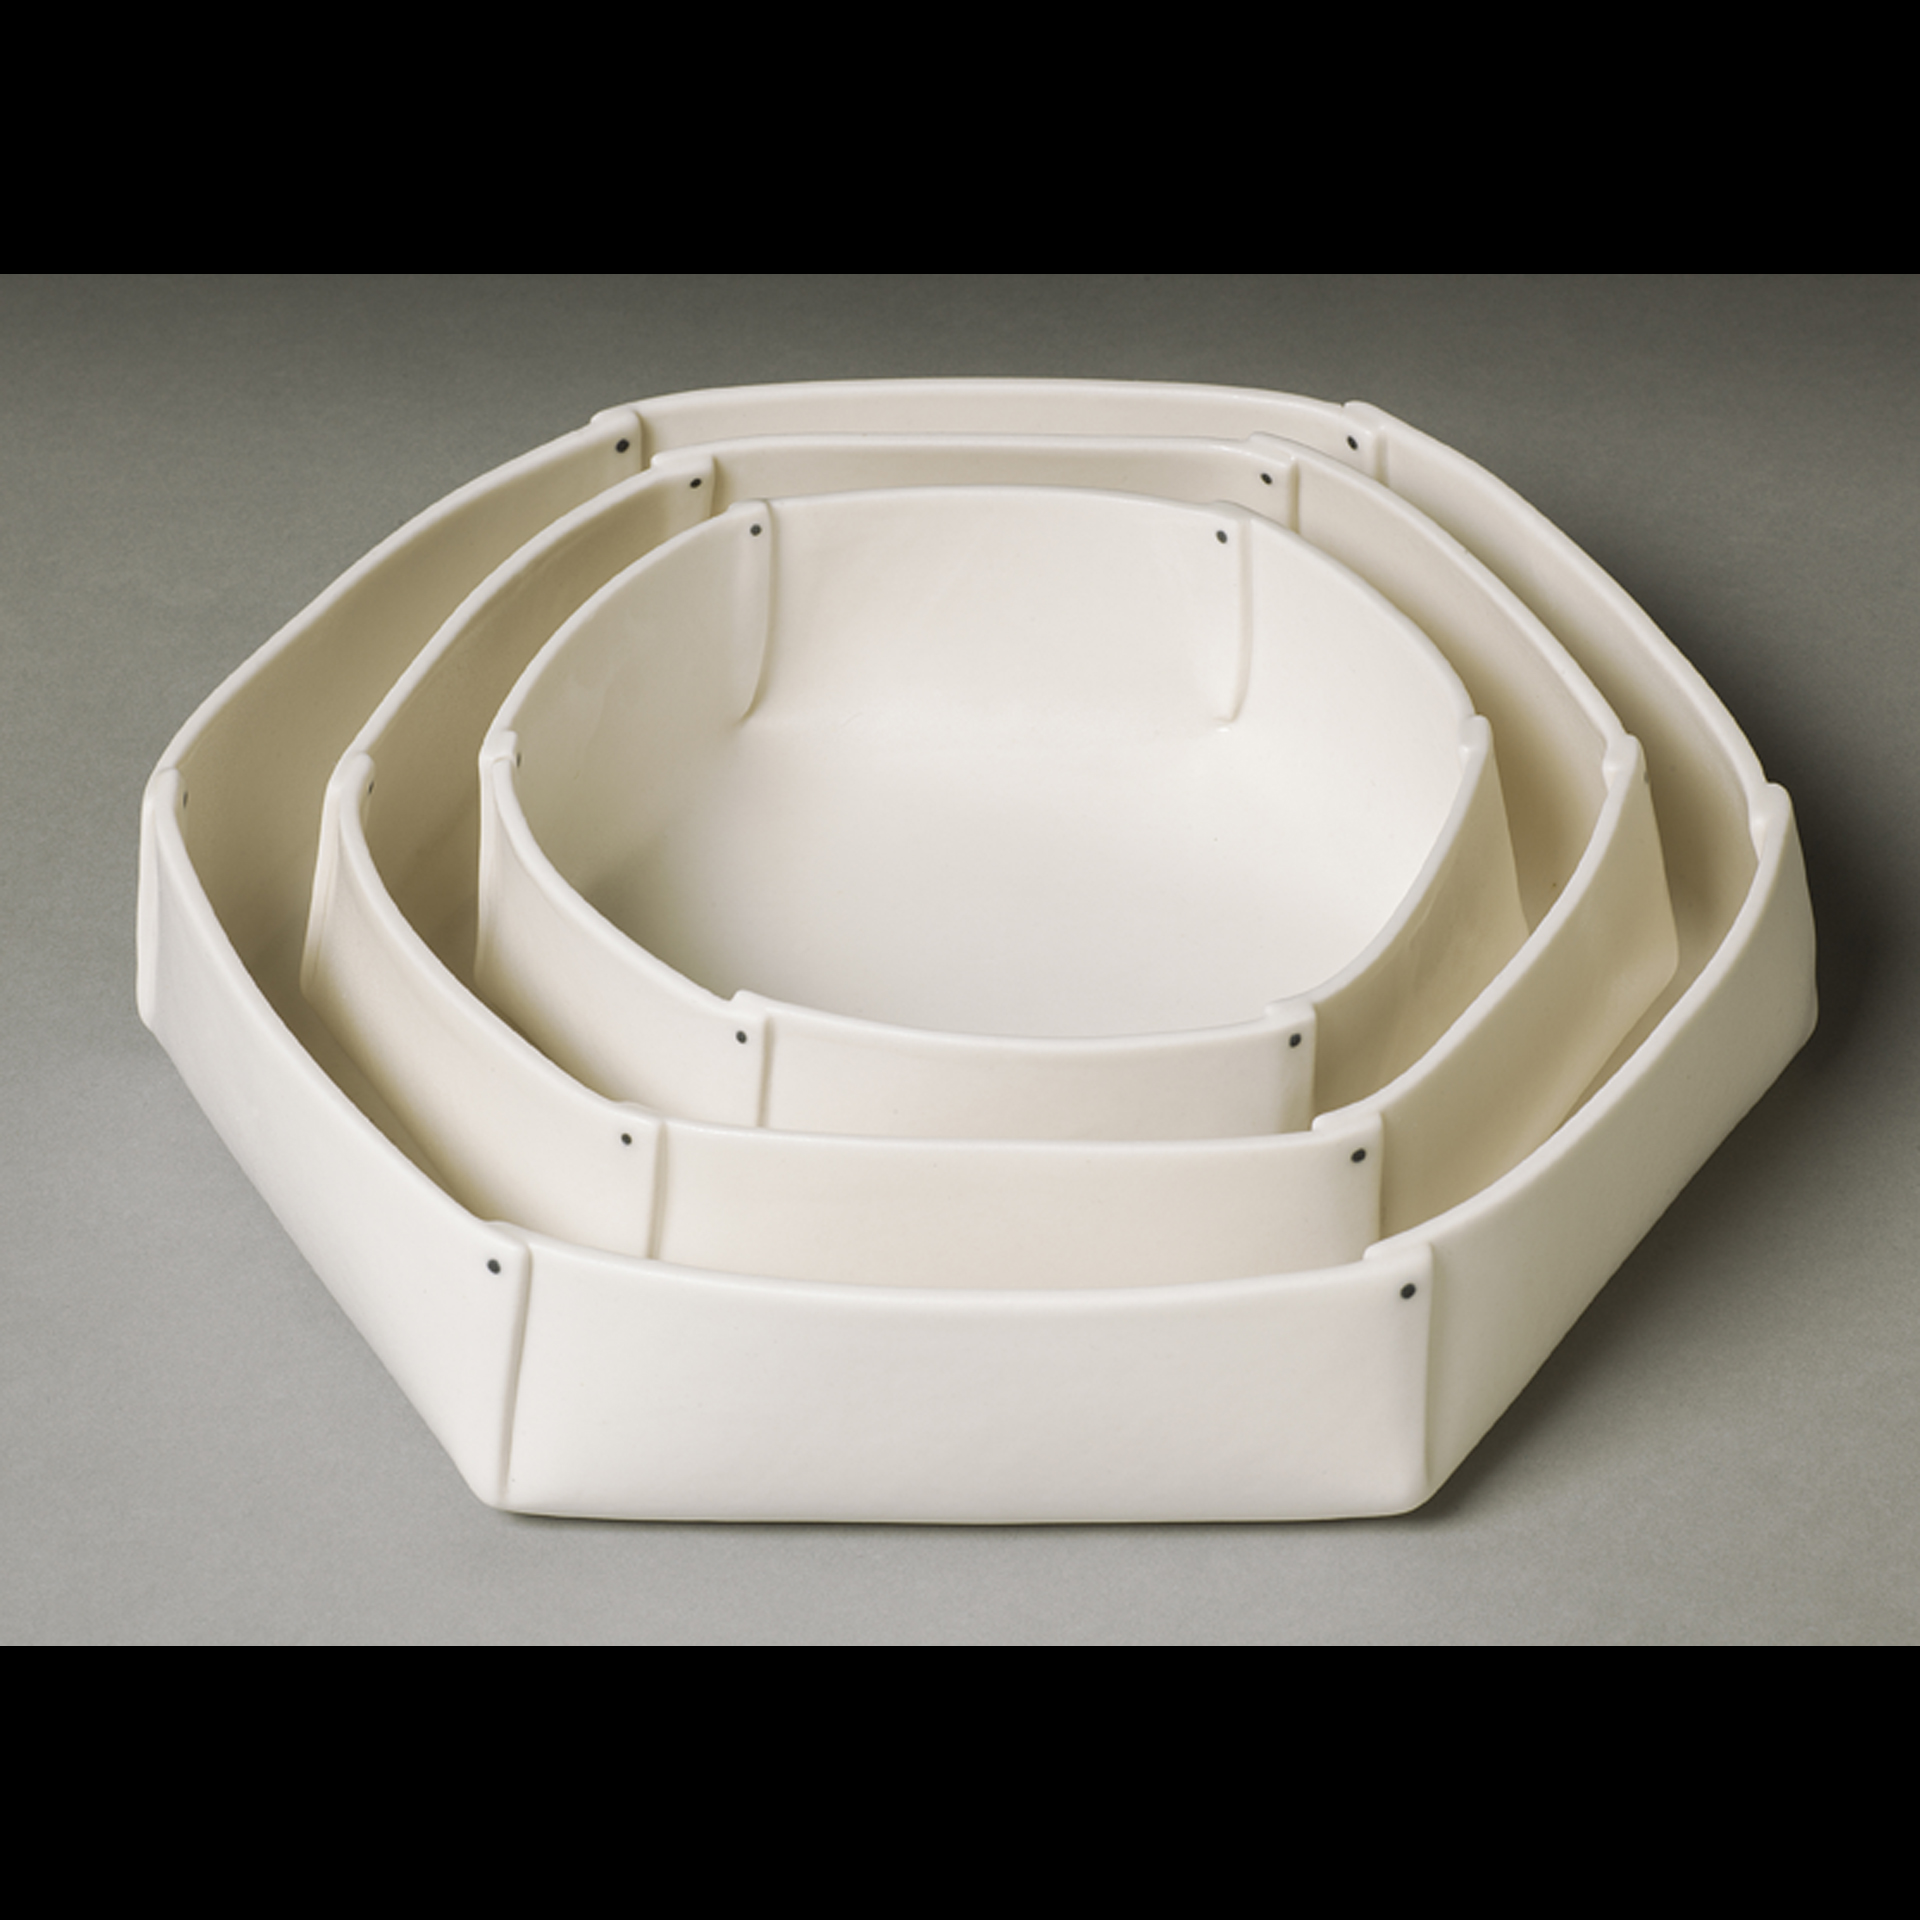 Six-Sided Tray Set